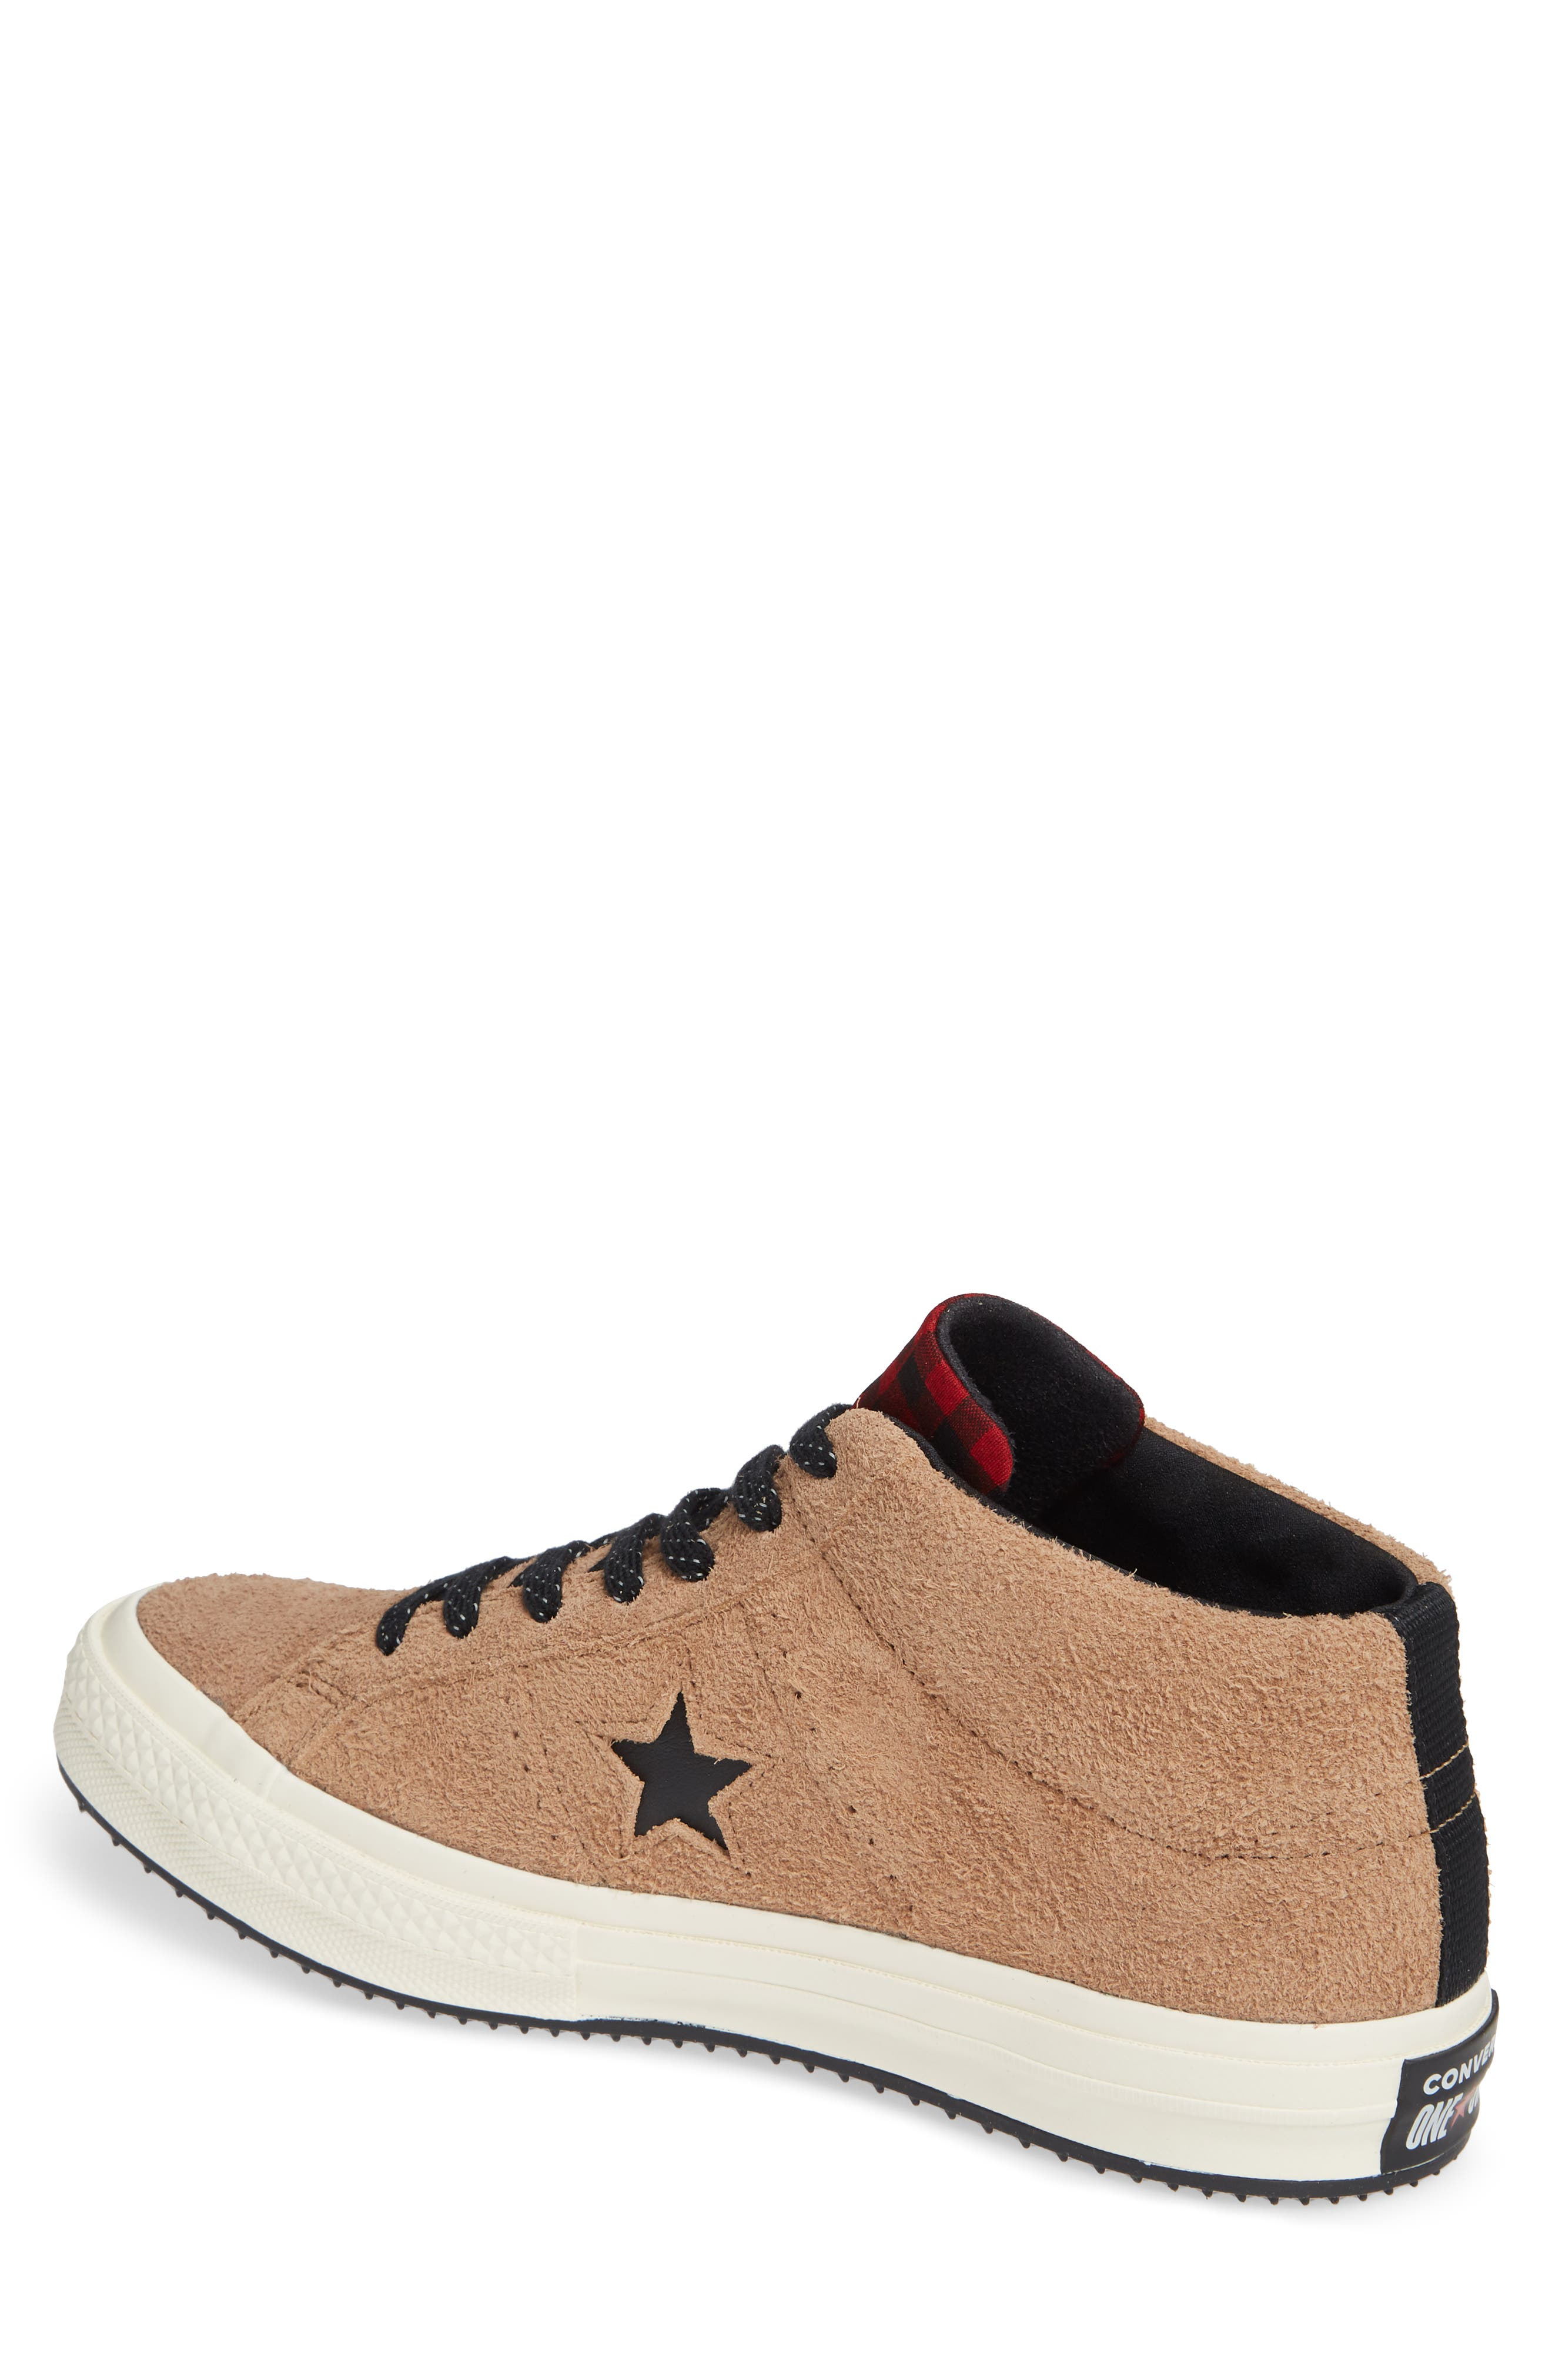 One Star Climate Counter Mid Top Sneaker,                             Alternate thumbnail 2, color,                             FIELD SURPLUS SUEDE